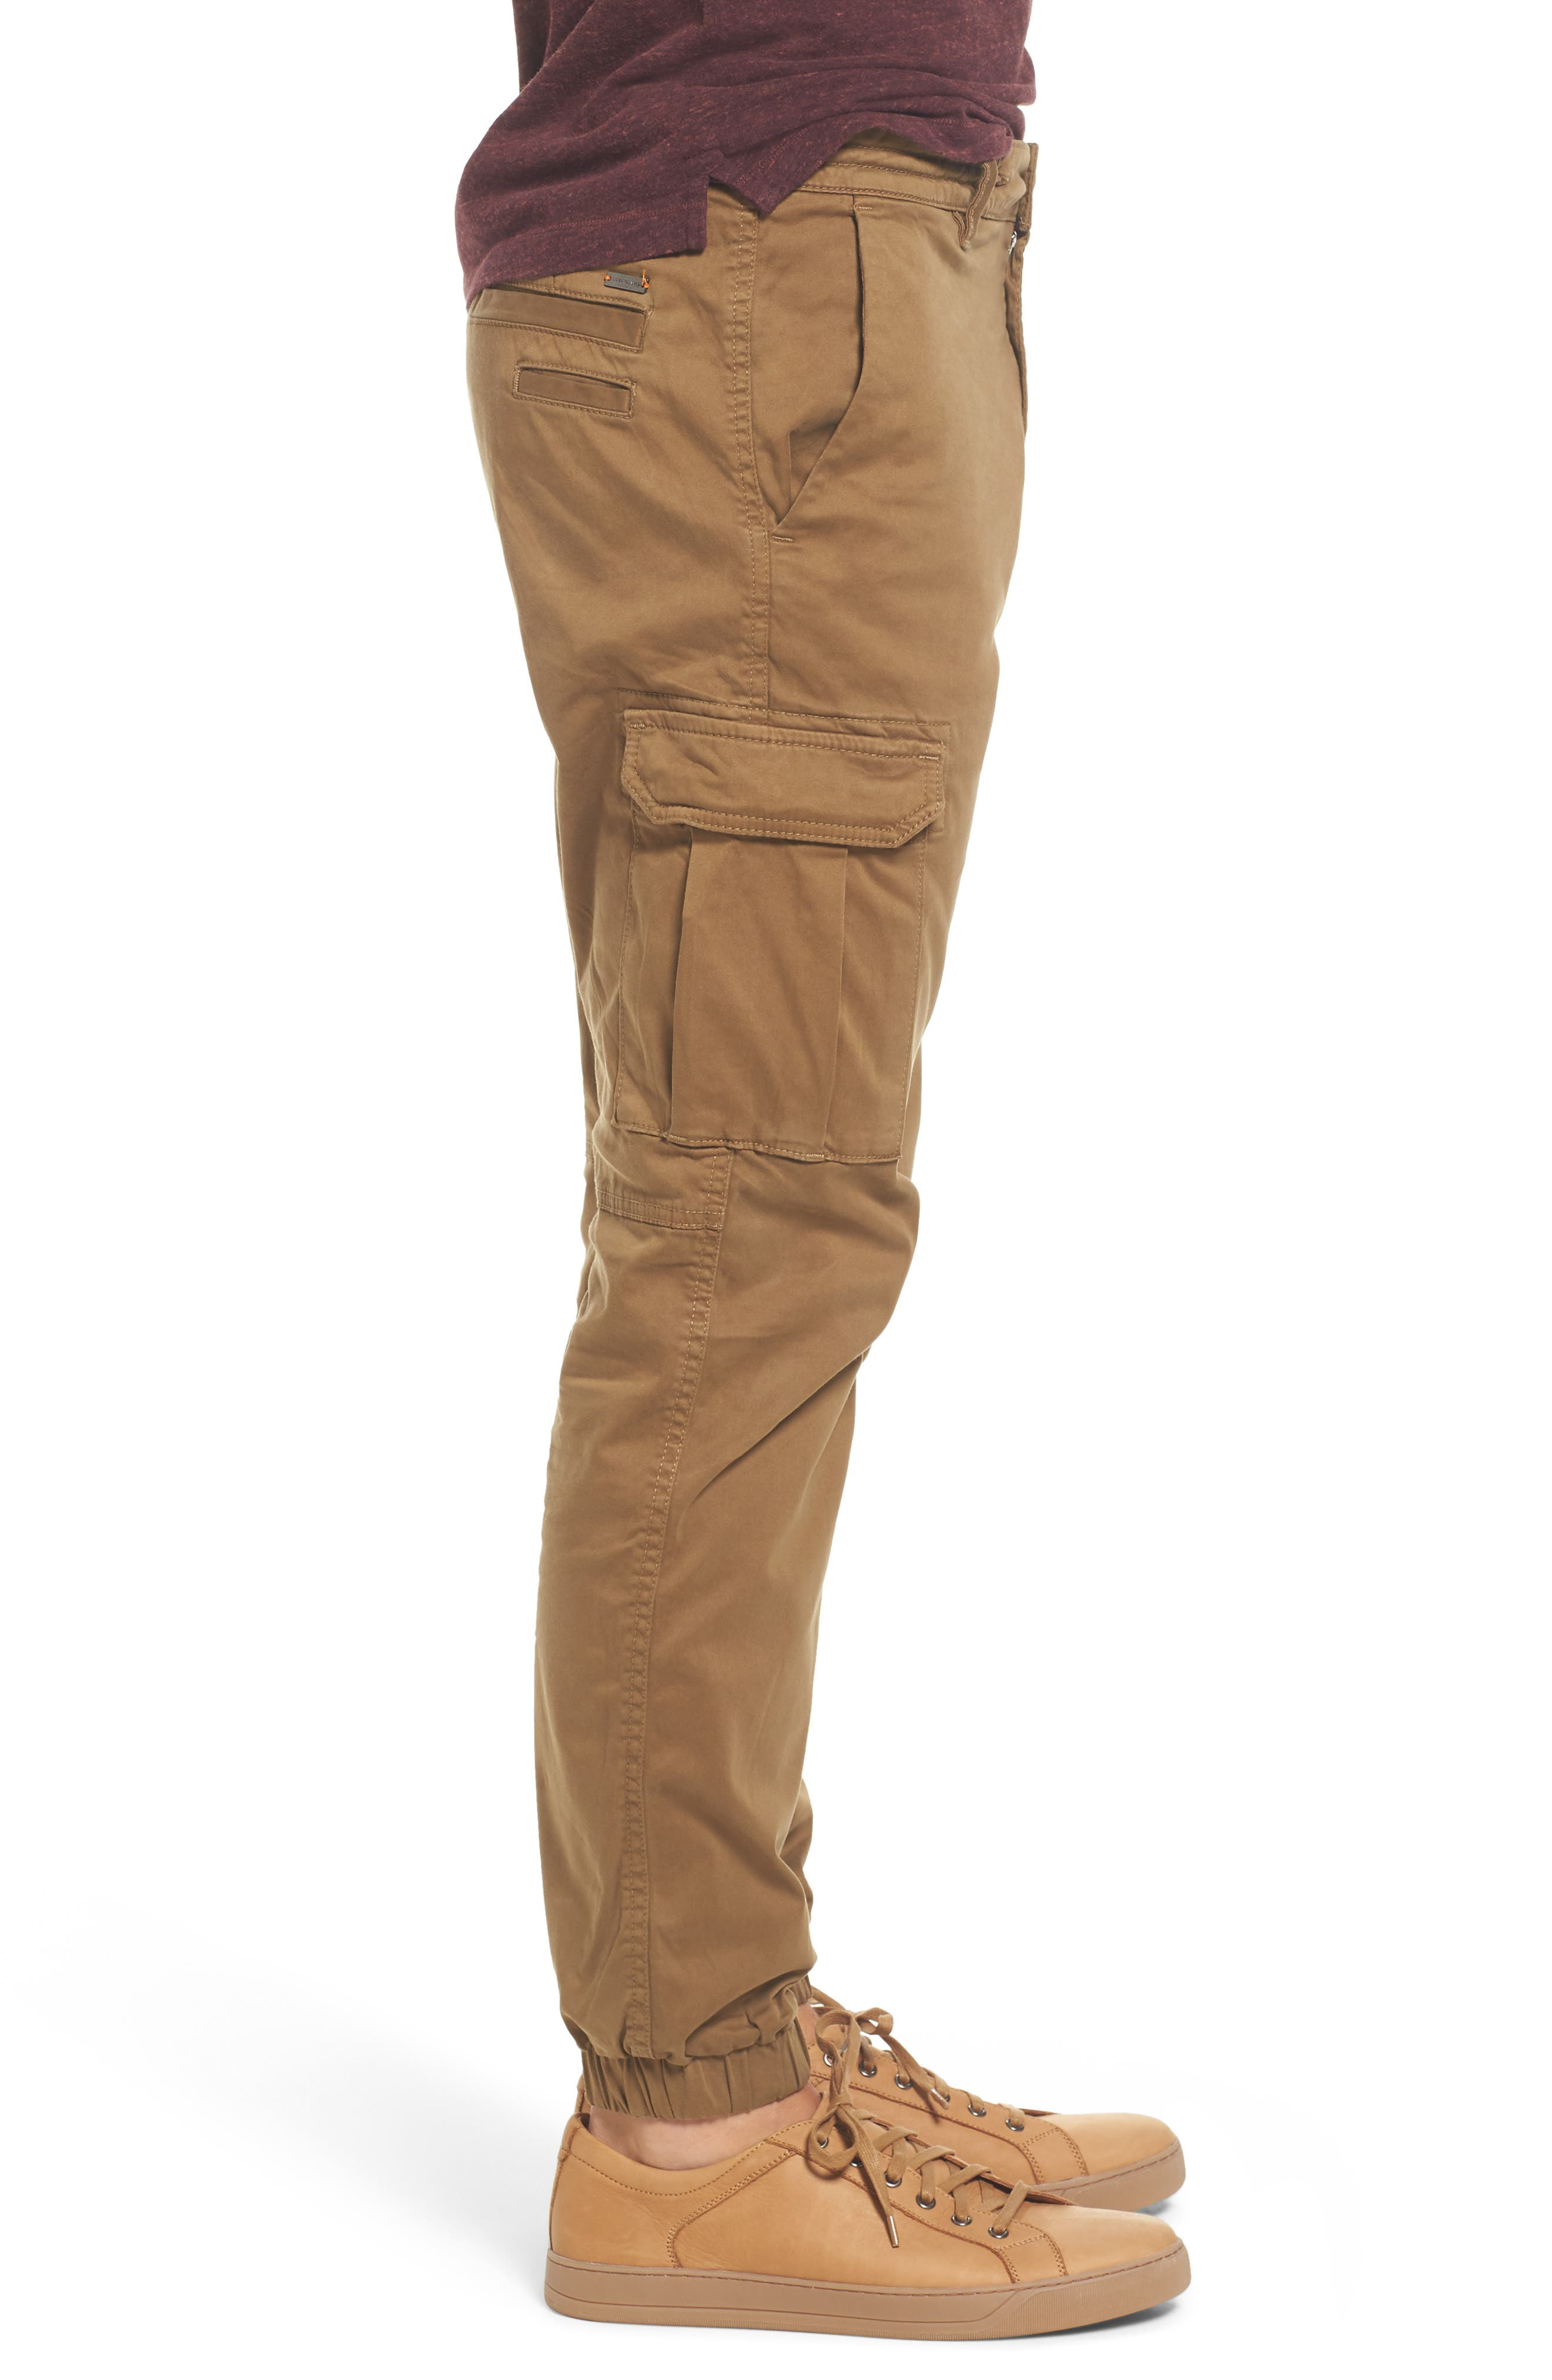 Shay 2 Cargo Pants,                             Alternate thumbnail 3, color,                             280